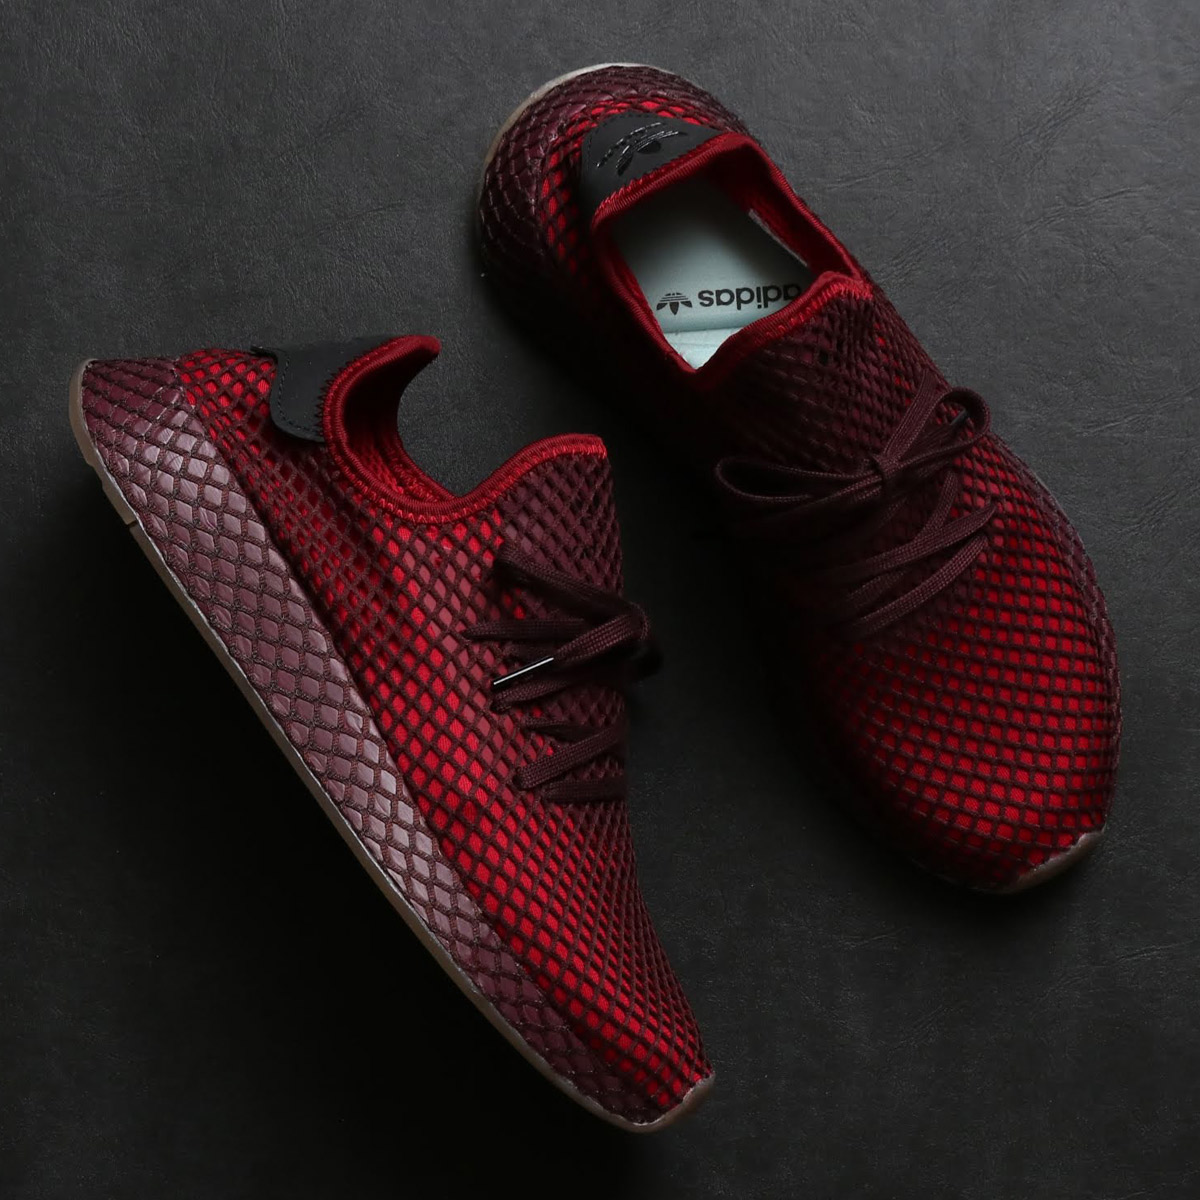 sports shoes 49846 0f4f3 atmos pink adidas Originals DEERUPT RUNNER (Adidas originals D - ラプトランナー)  COLLEGEATE BURGUNDYCOLLEGEATE BURGUNDYASH GREEN 18FW-I  Rakuten Global  ...